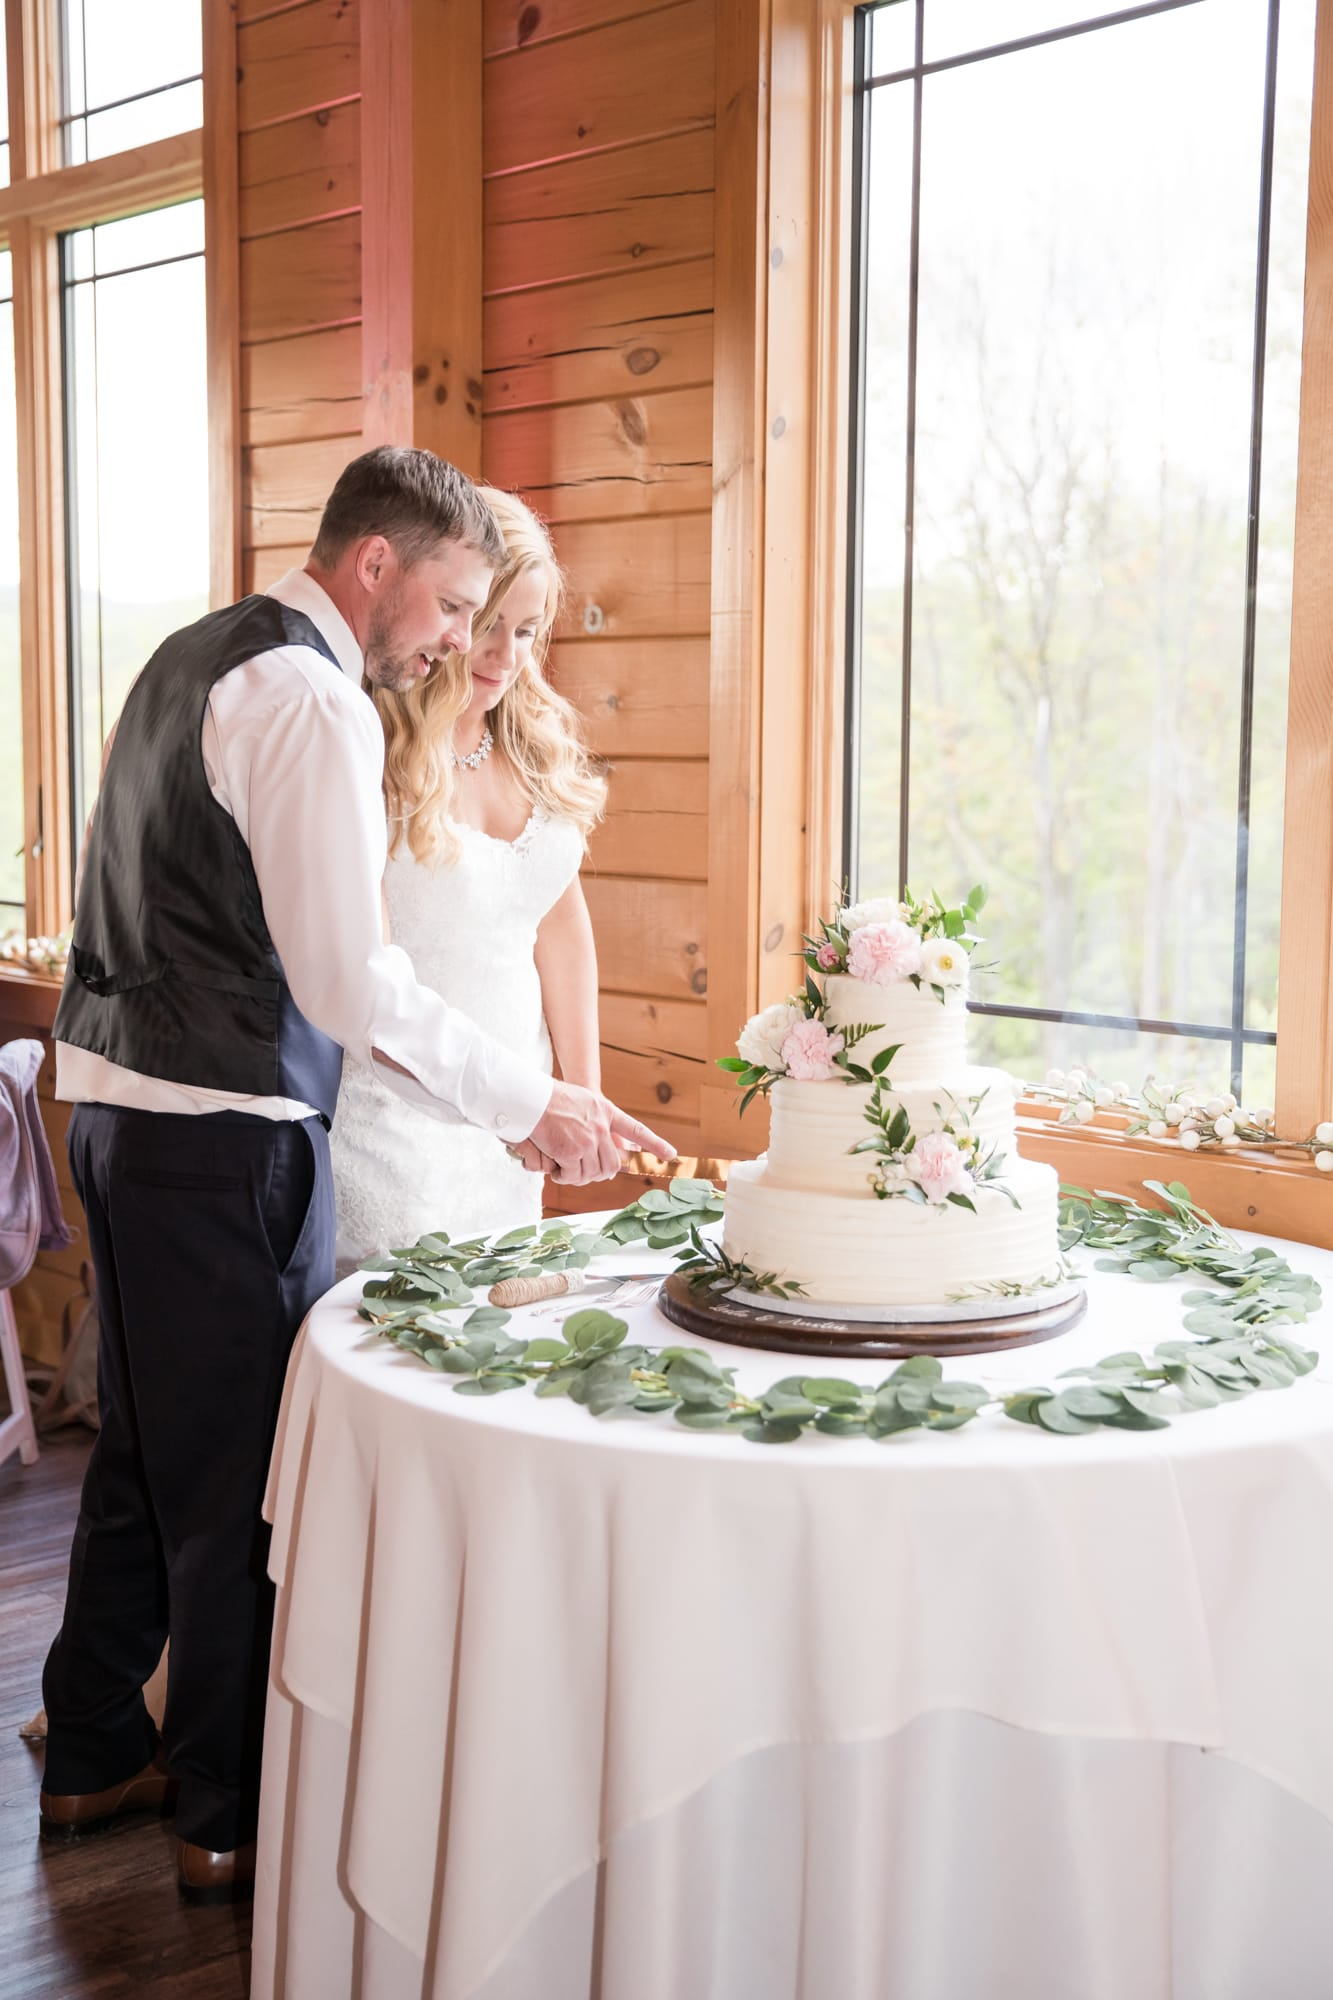 Cake cutting at Rolling Rails Lodge reception